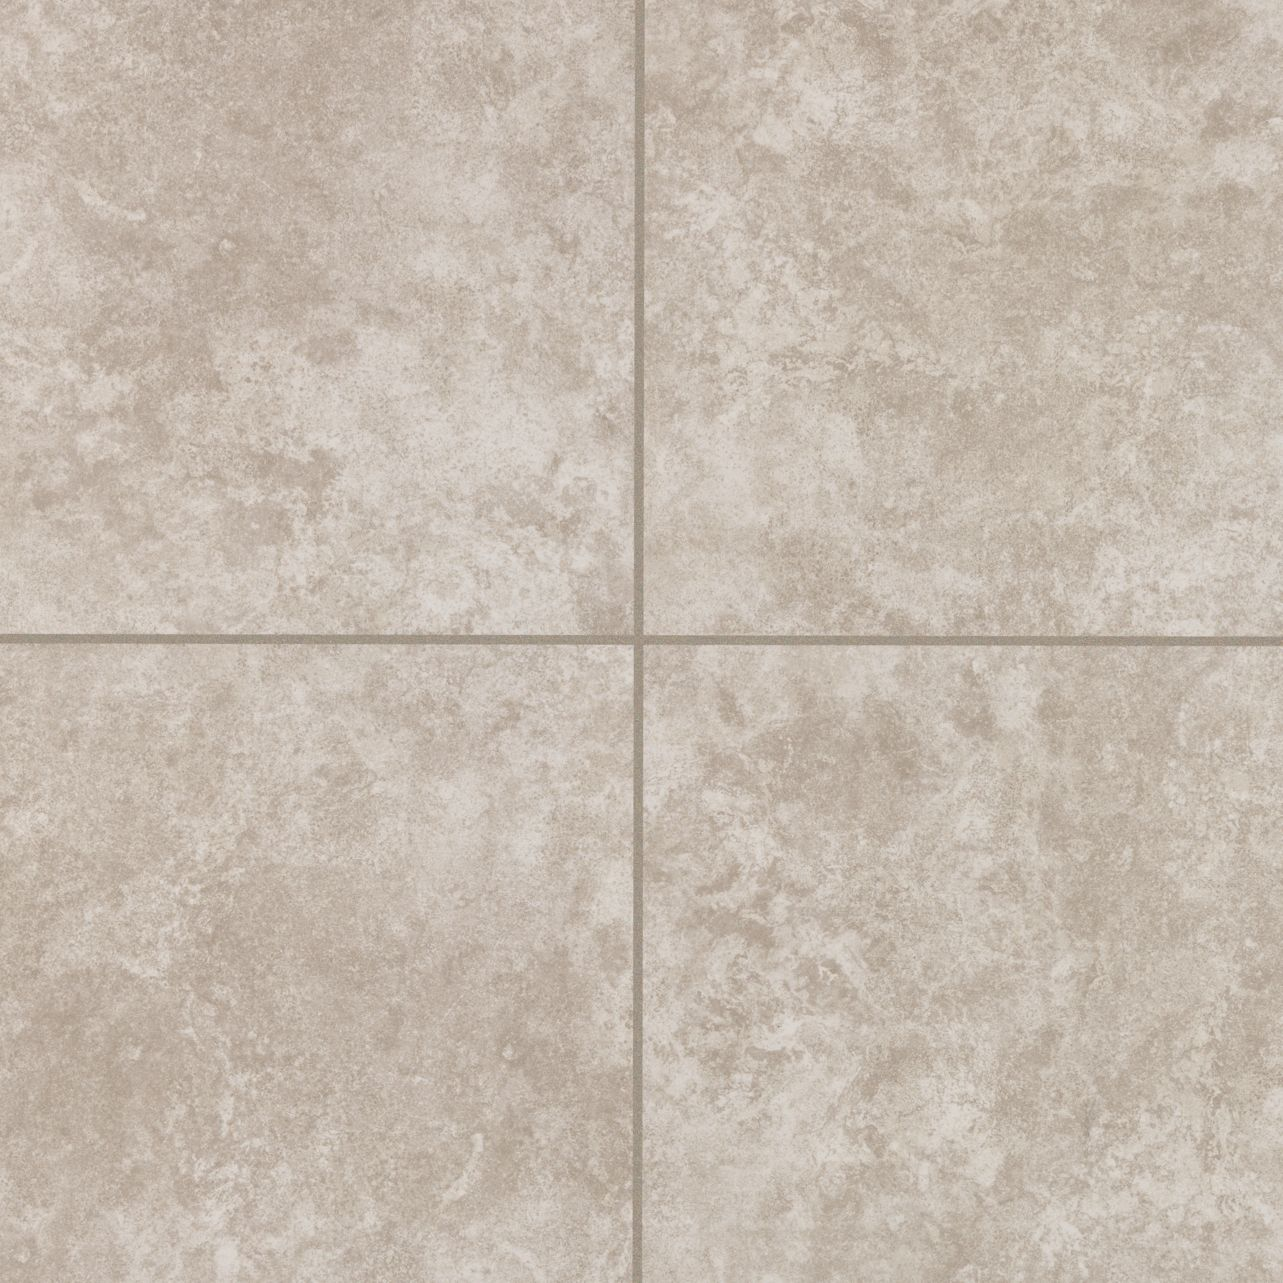 CeramicPorcelainTile AstelloWall T810F-AN35 Grey